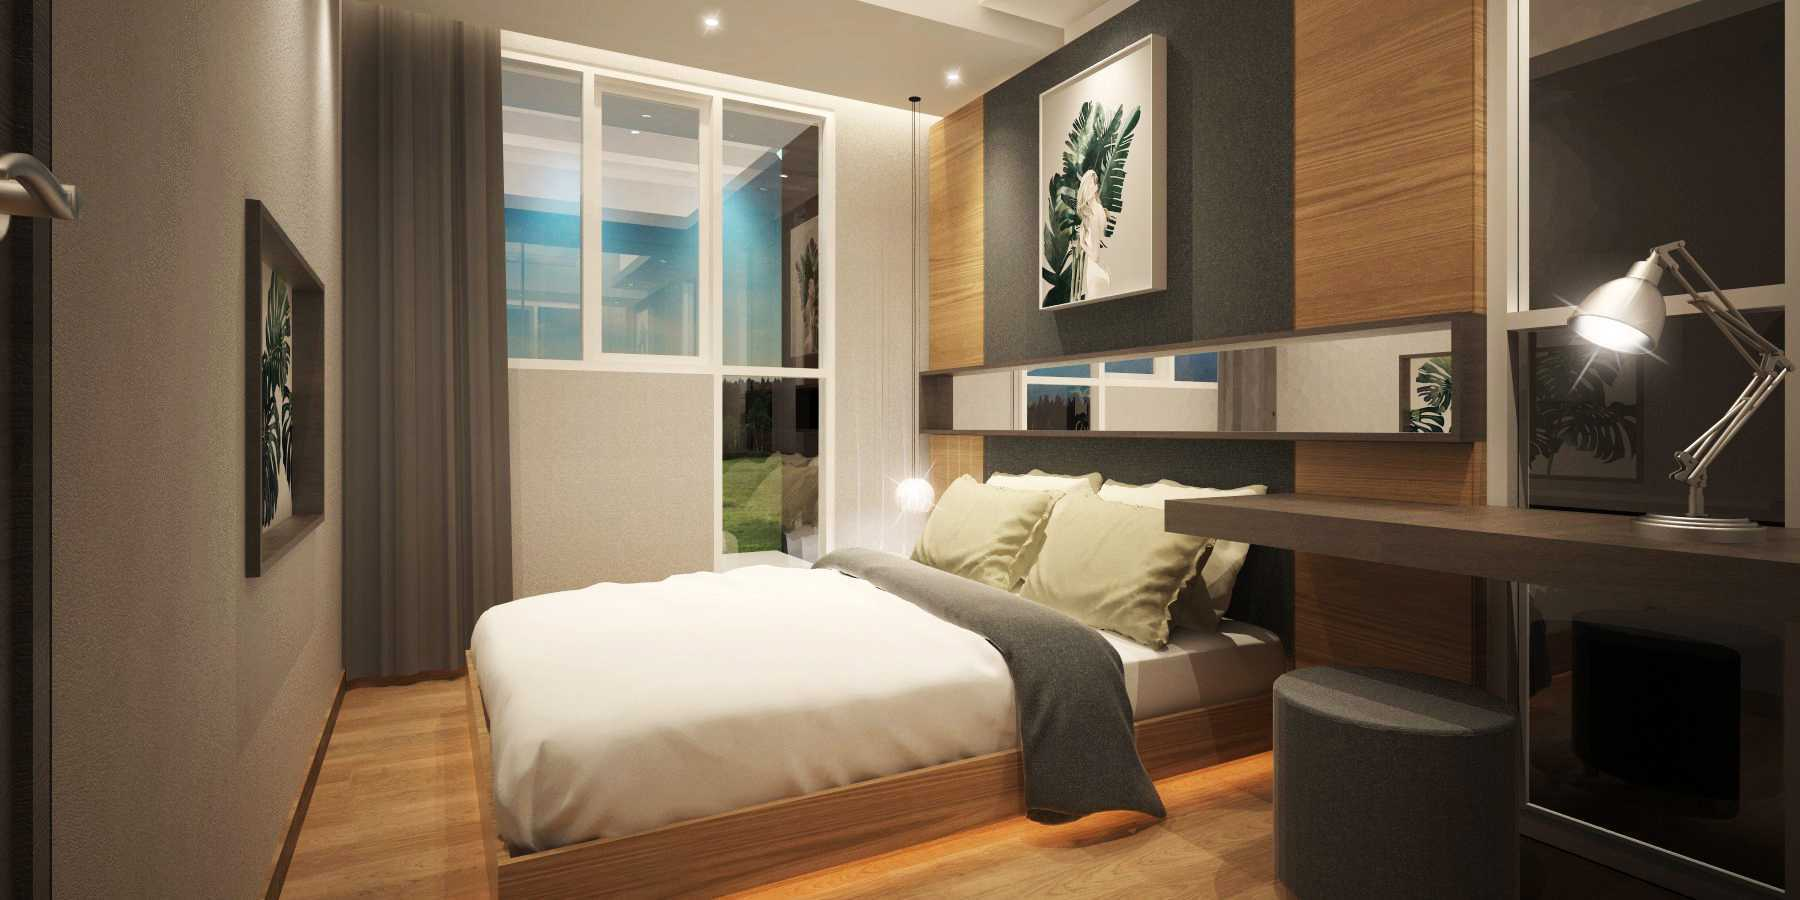 Mahastudio & Partner Show Unit Verdura Apartment Sentul, Babakan Madang, Bogor, West Java, Indonesia Sentul, Babakan Madang, Bogor, West Java, Indonesia Bedroom Kontemporer  32505